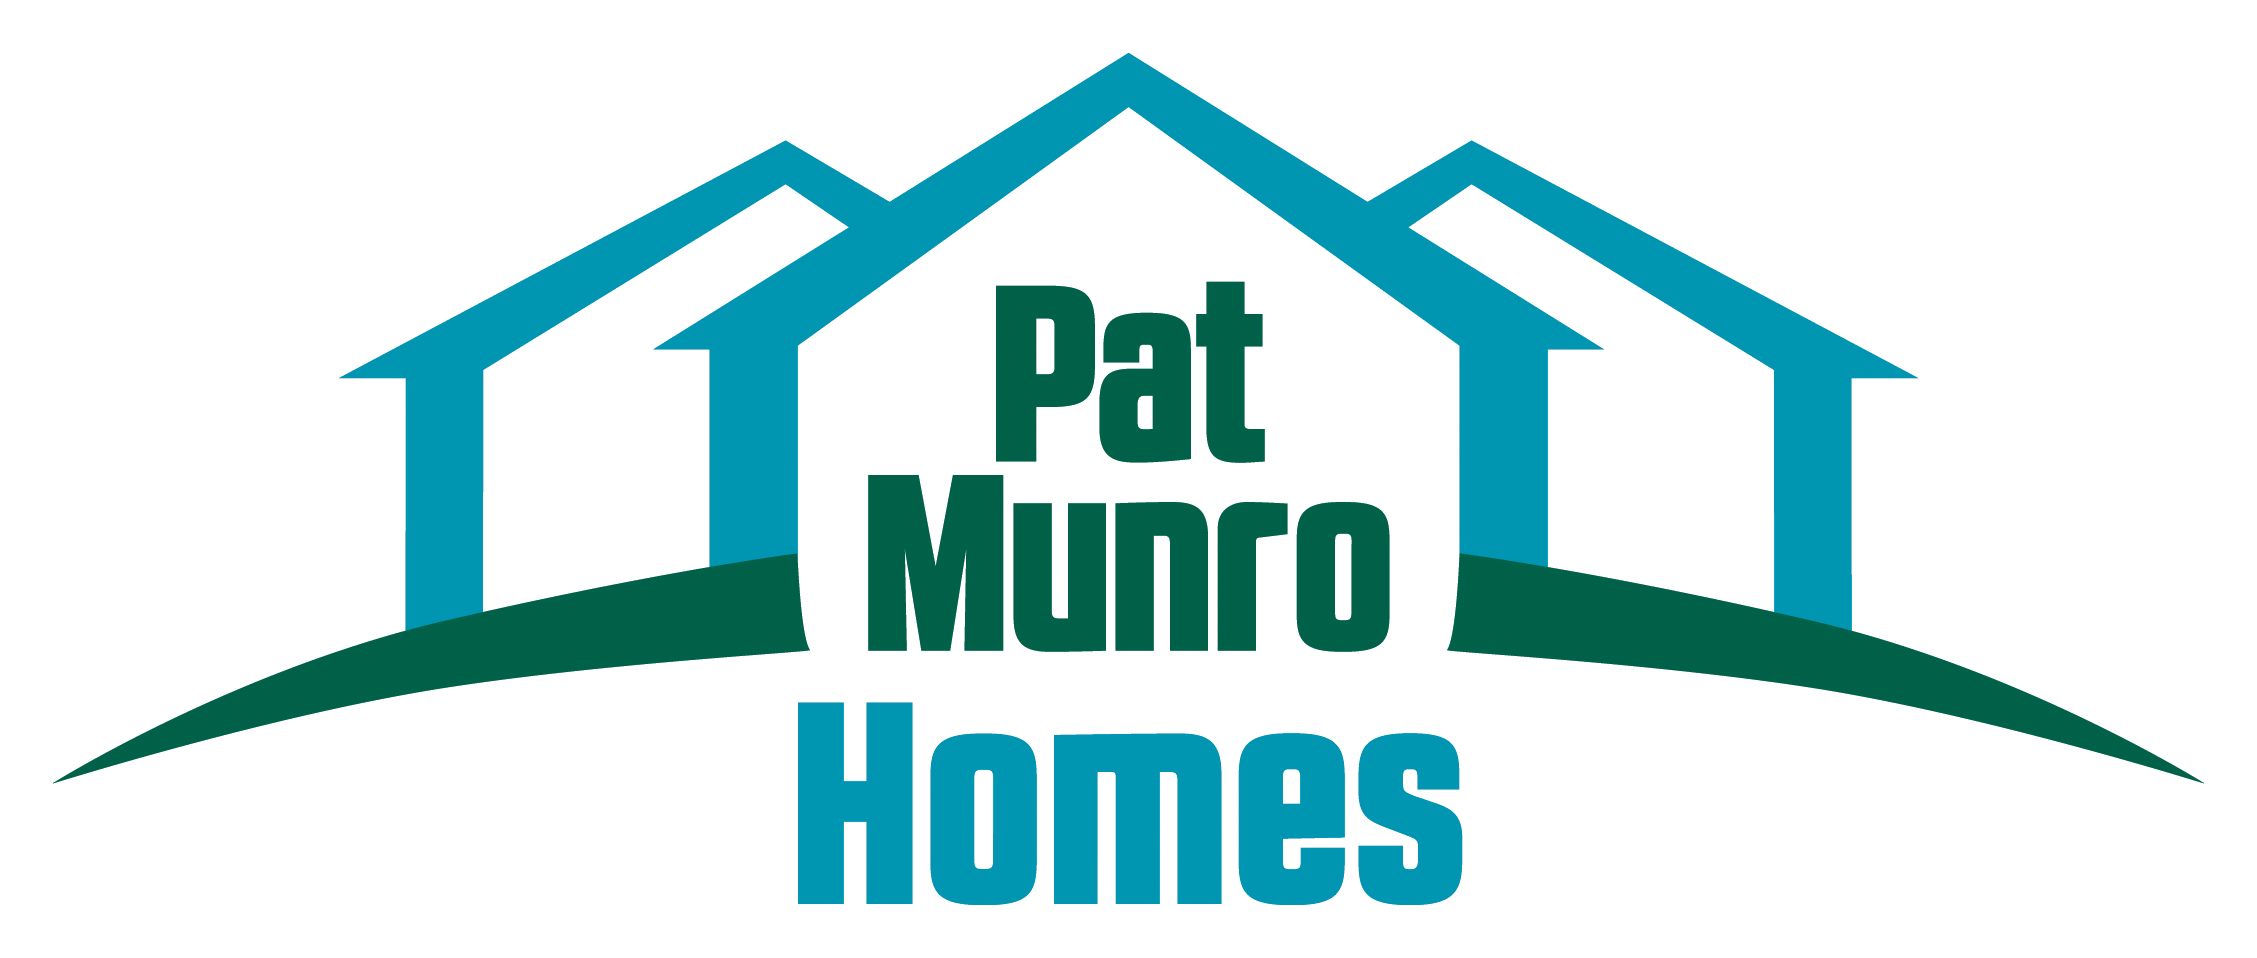 Pat Munro Homes